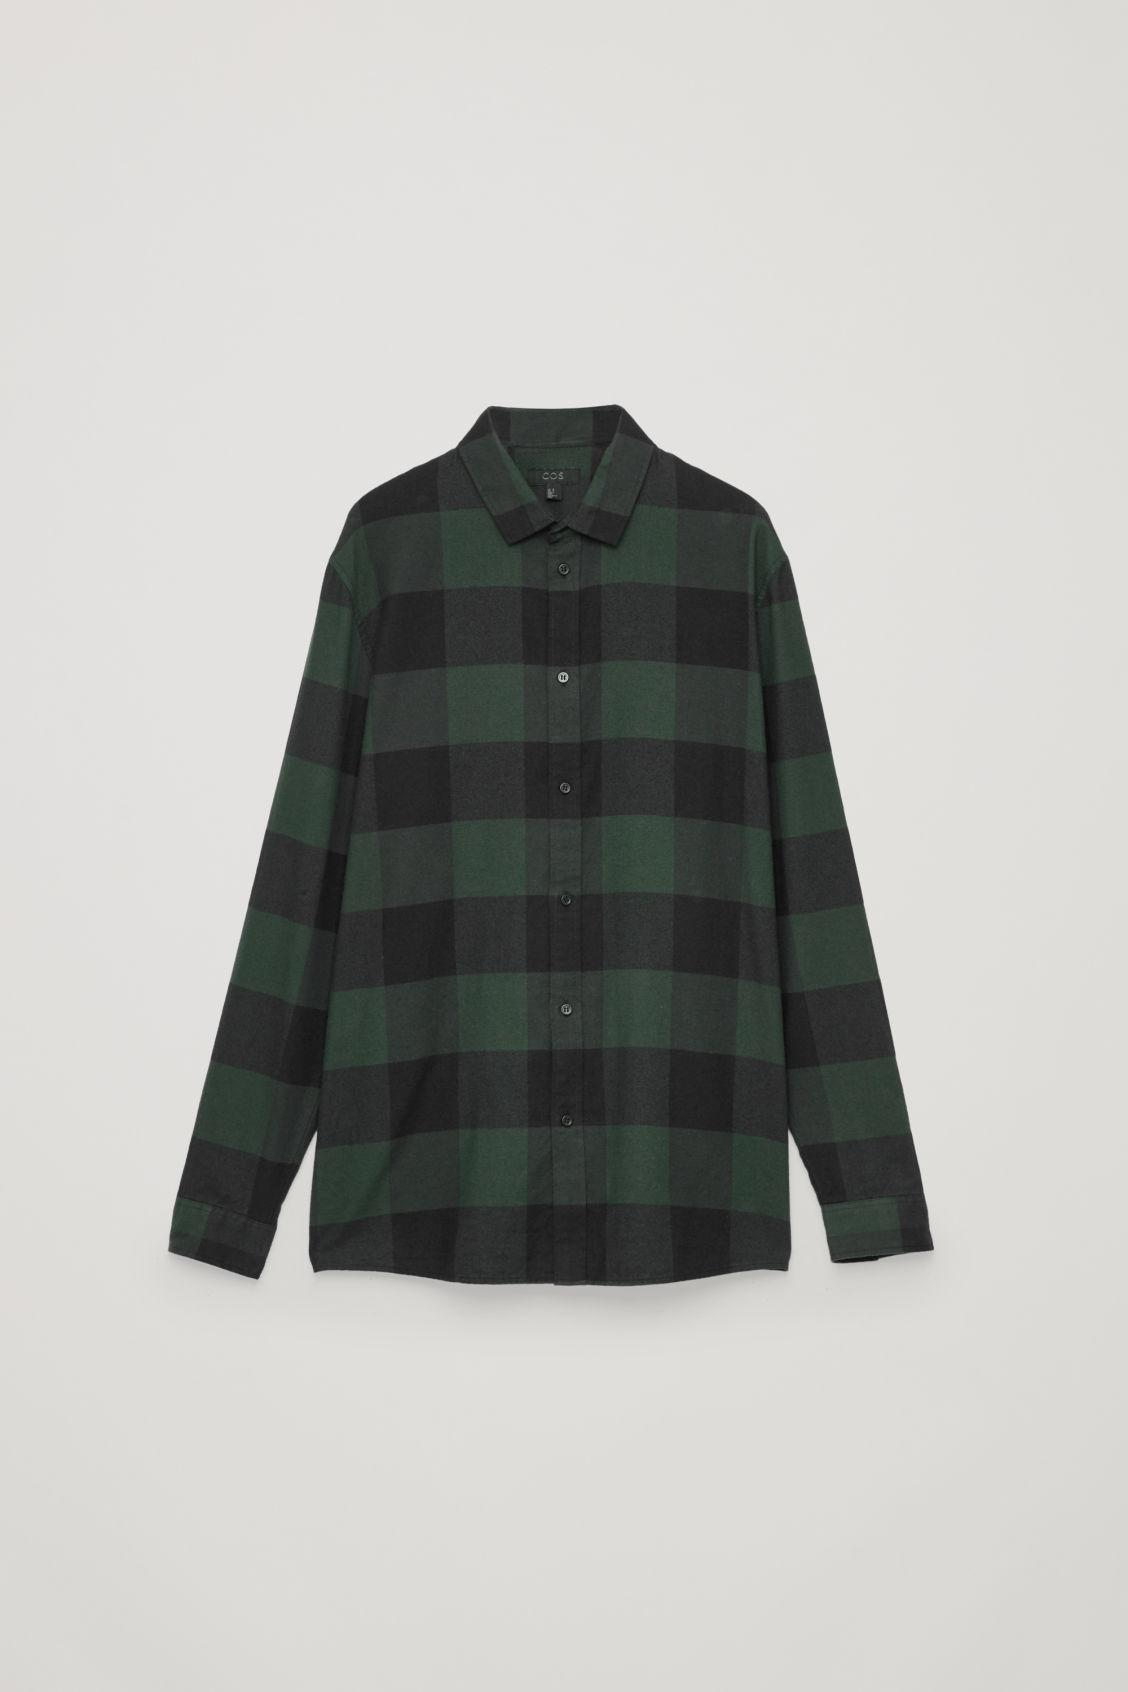 Cos Checked Cotton Shirt In Green